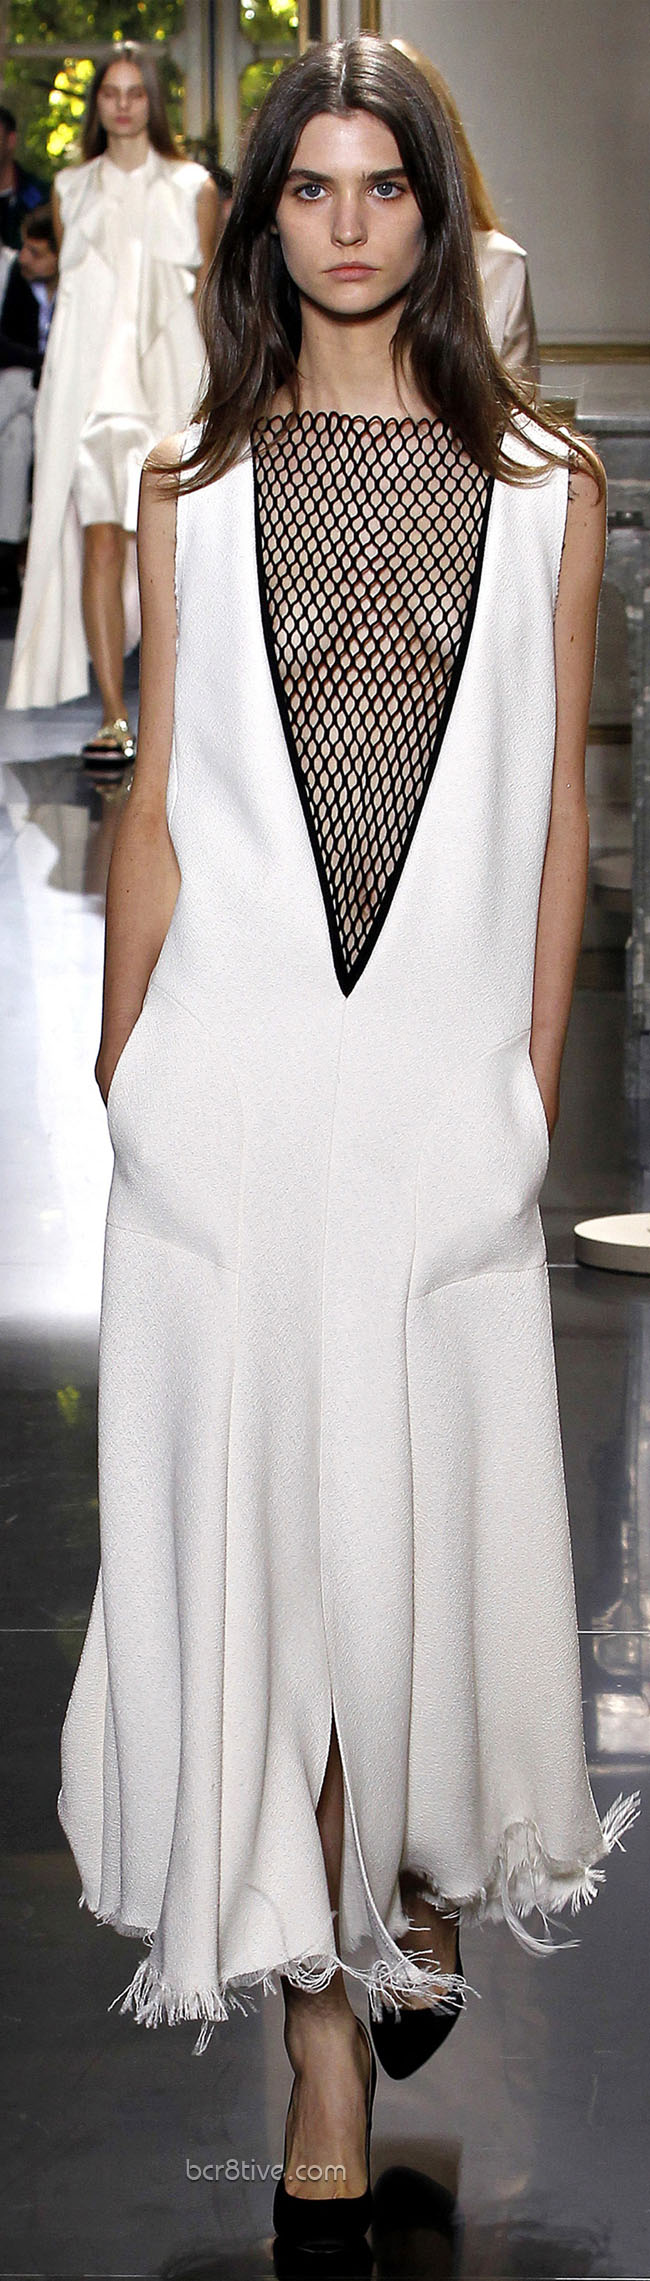 Celine Spring Summer 2013 Ready to Wear 01